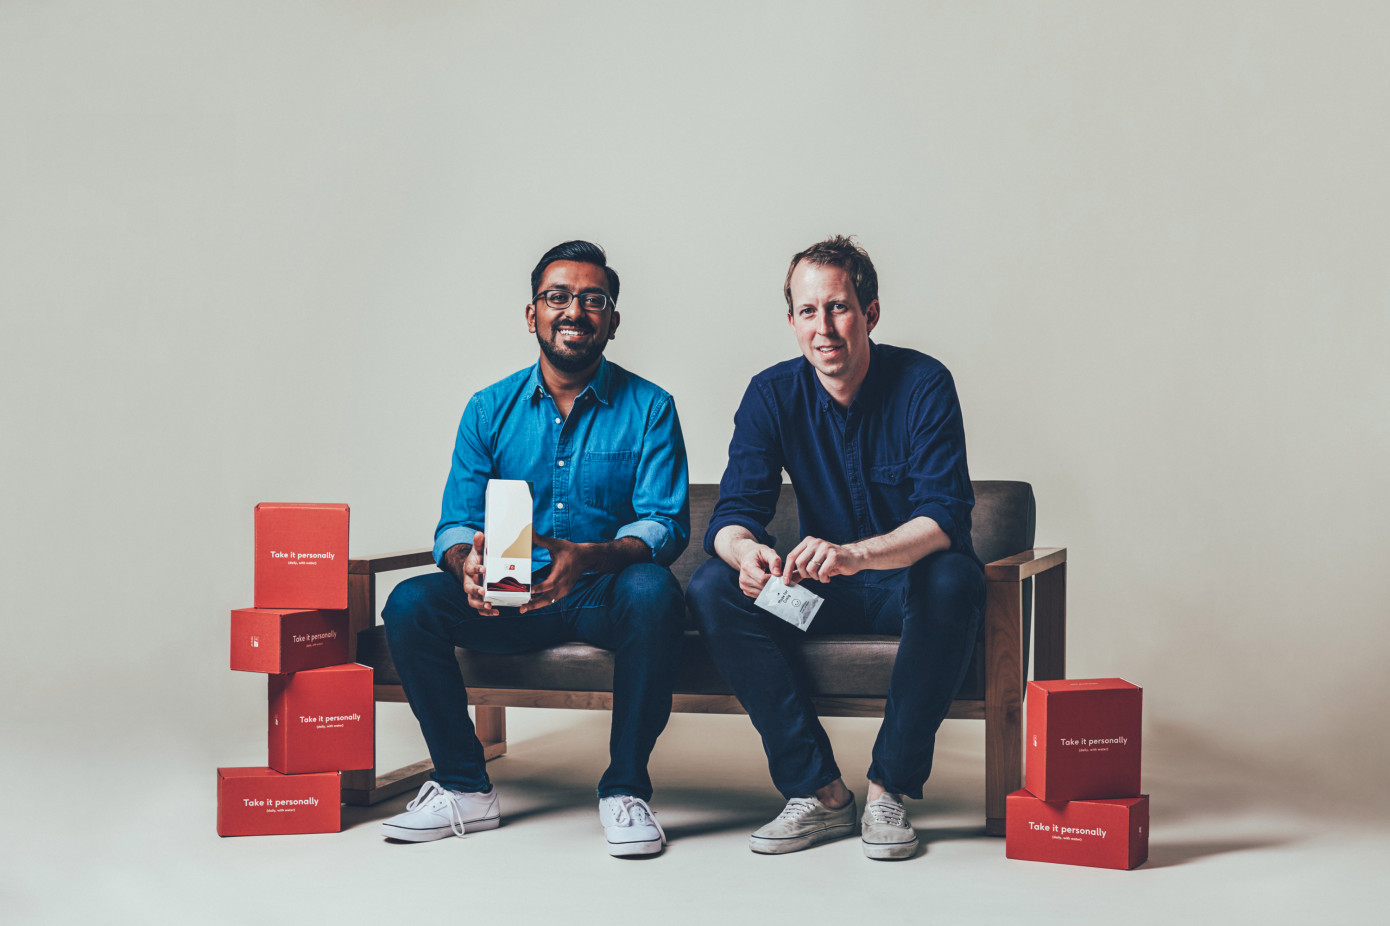 Care/of co-founder and head of product, Akash Shah, and CEO Craig Elbert.